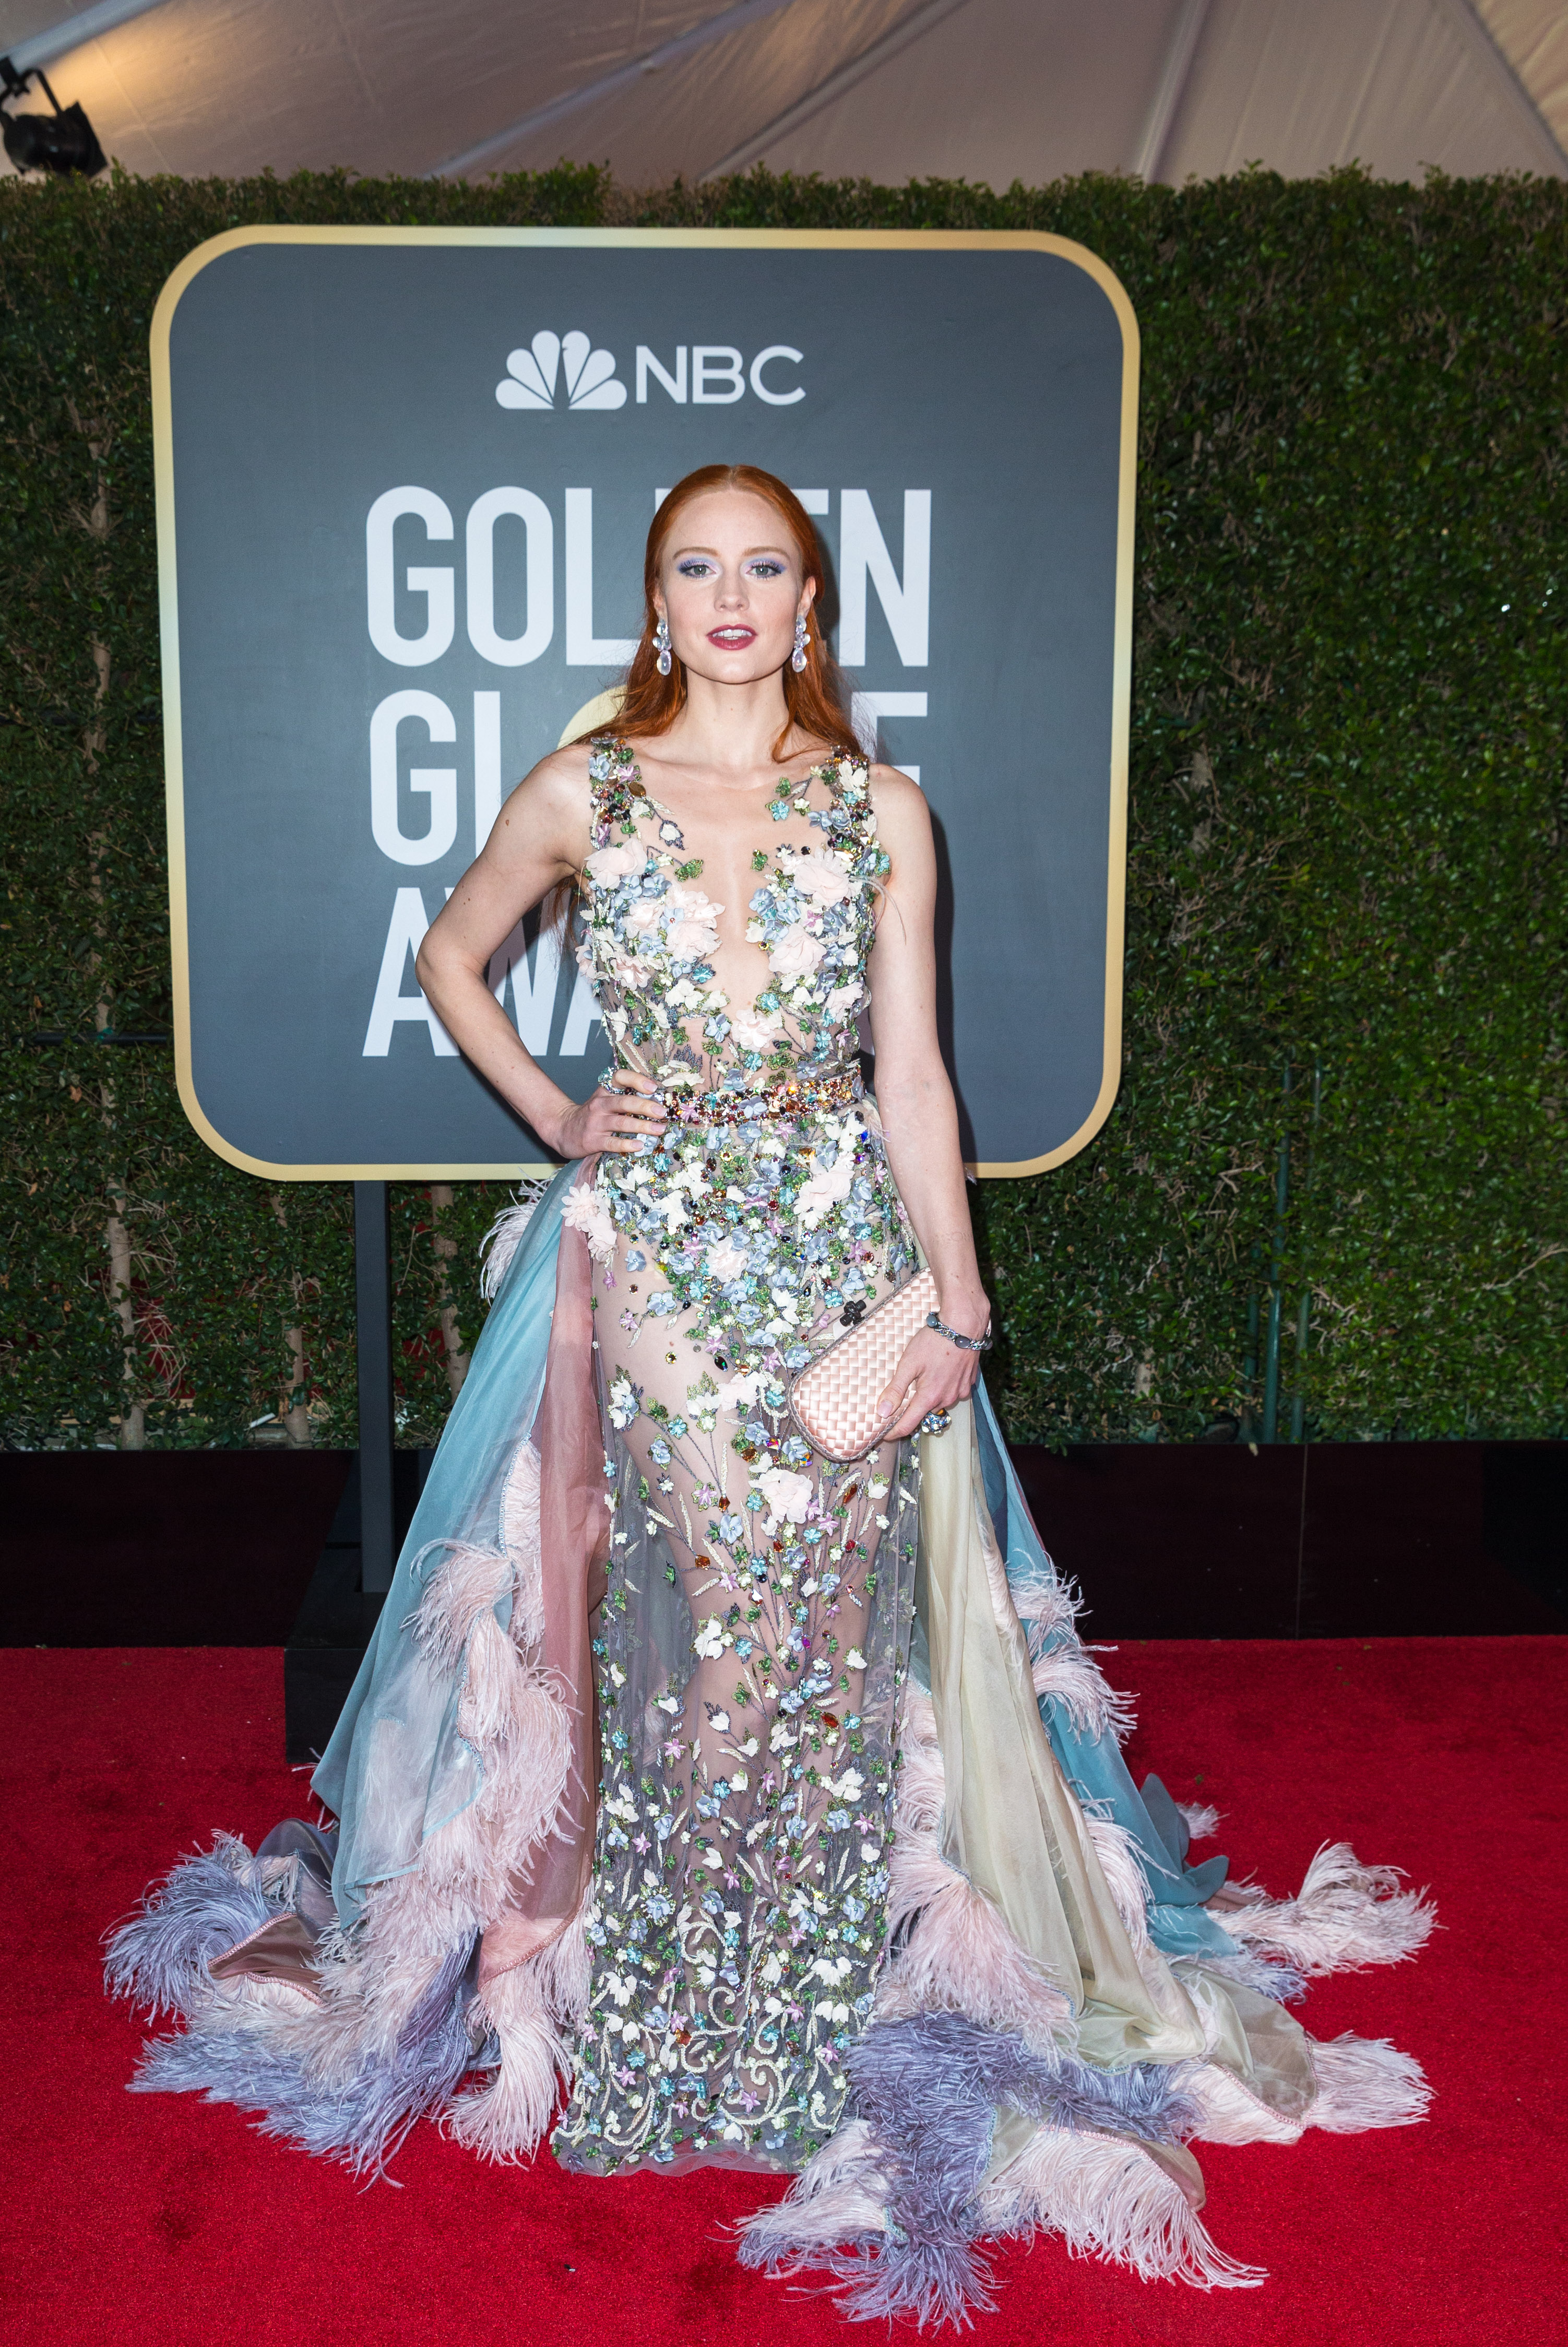 Model Barbara Meier attends the 75th Annual Golden Globes Awards at the Beverly Hilton in Beverly Hills, CA on Sunday, January 7, 2018.